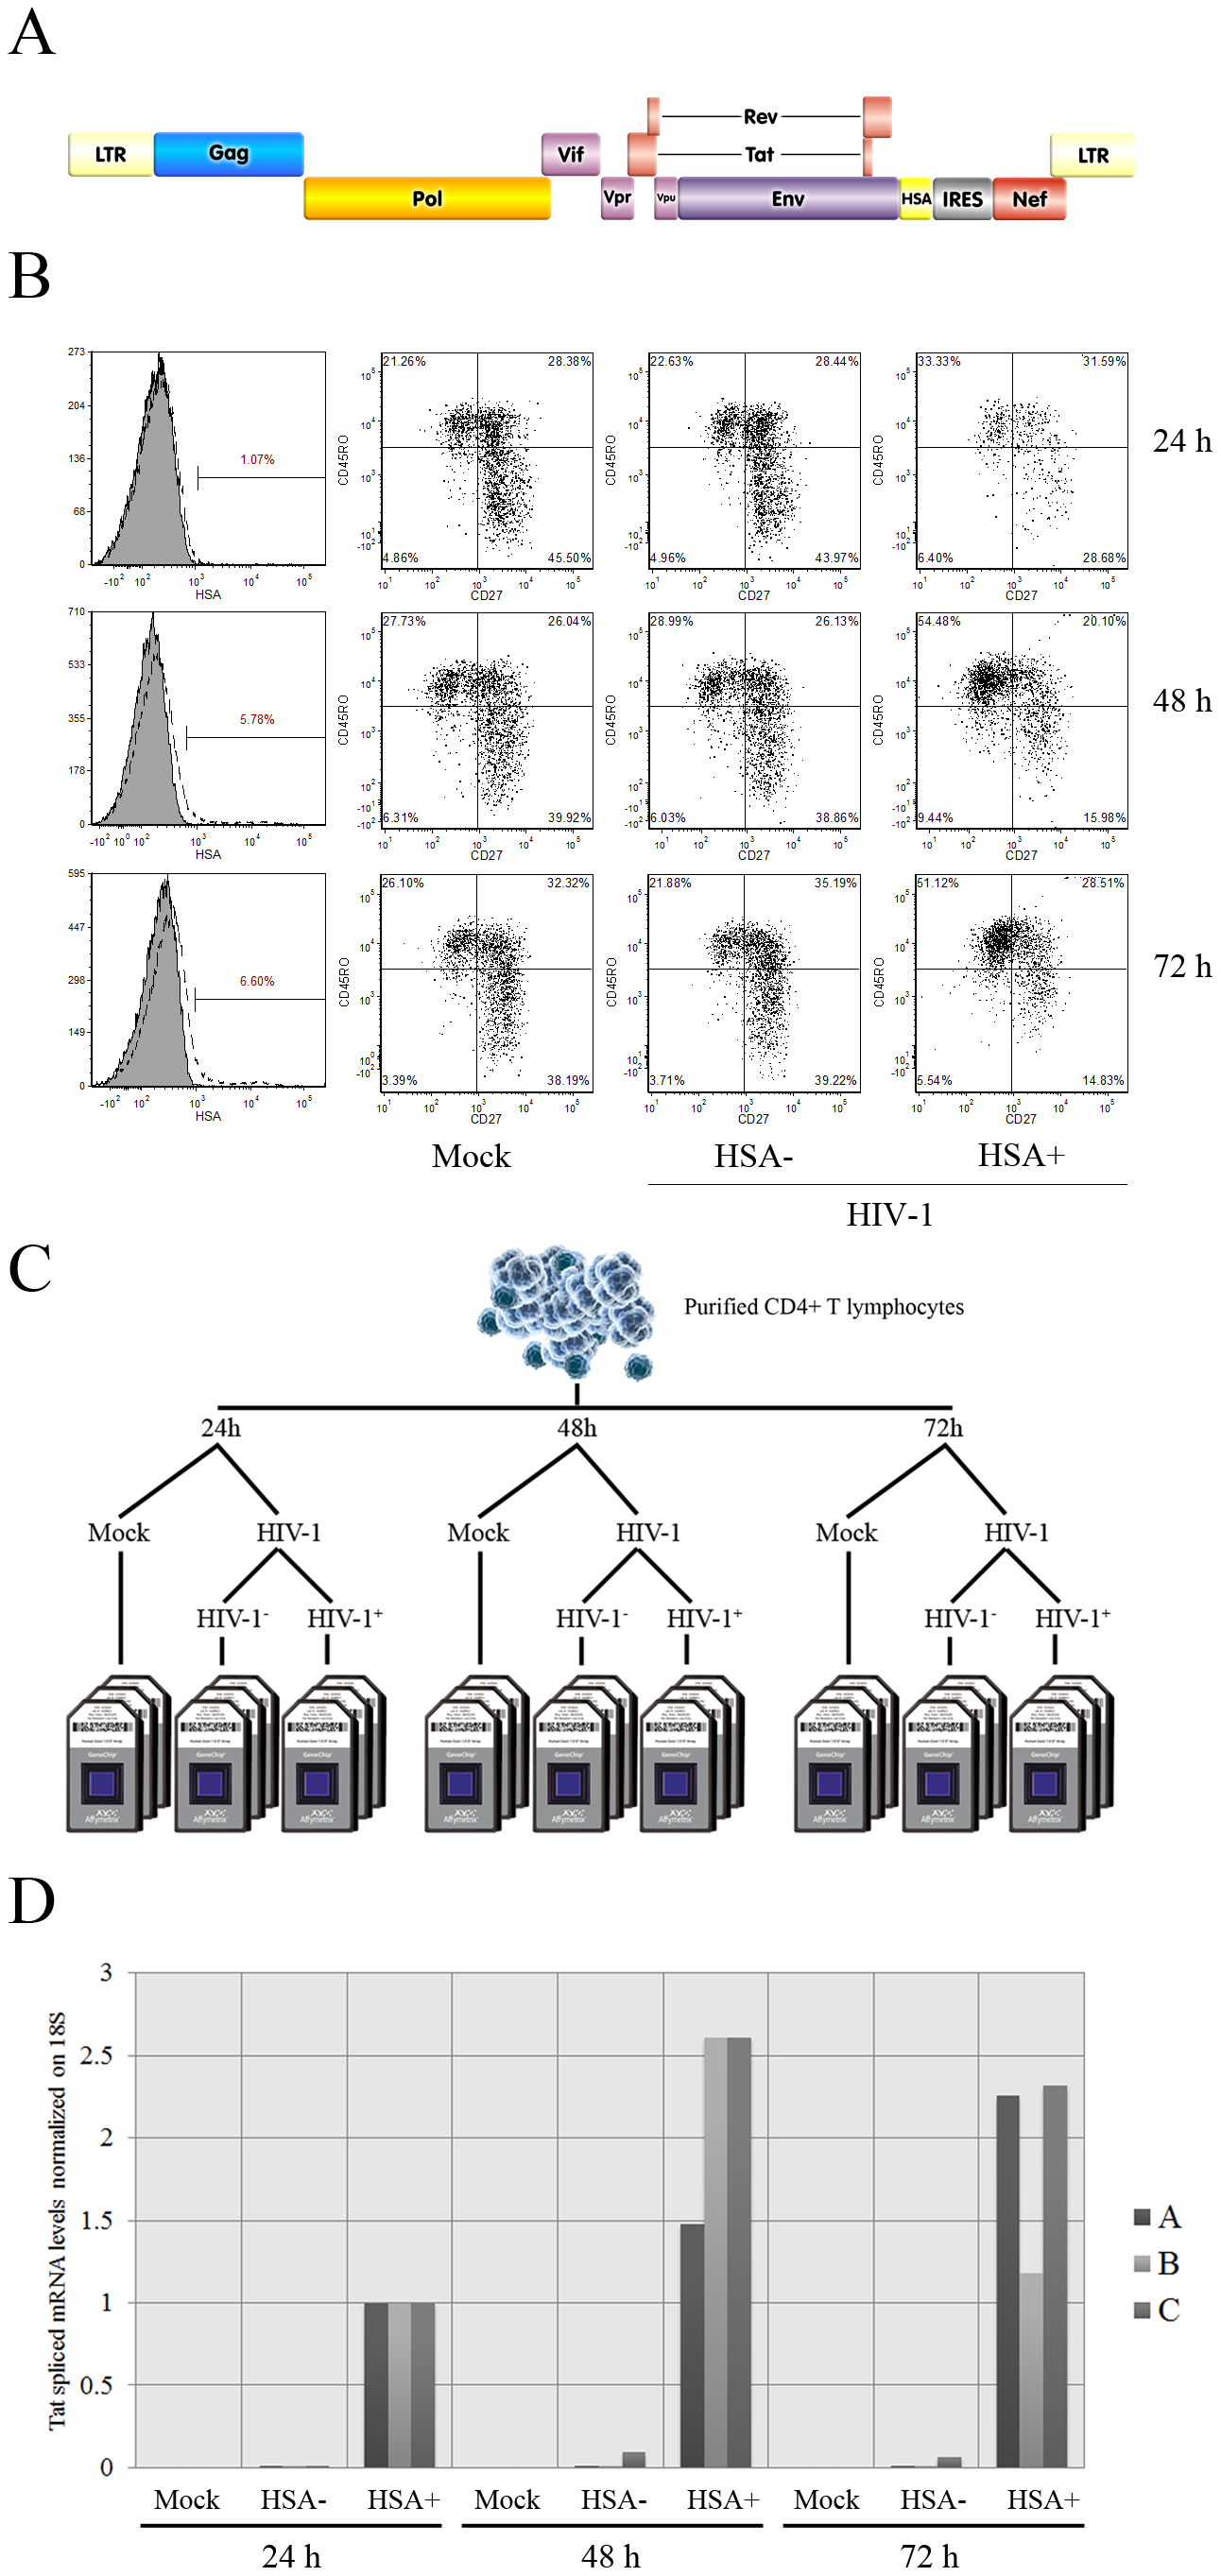 Isolation and characterization of HIV-1-infected cells.